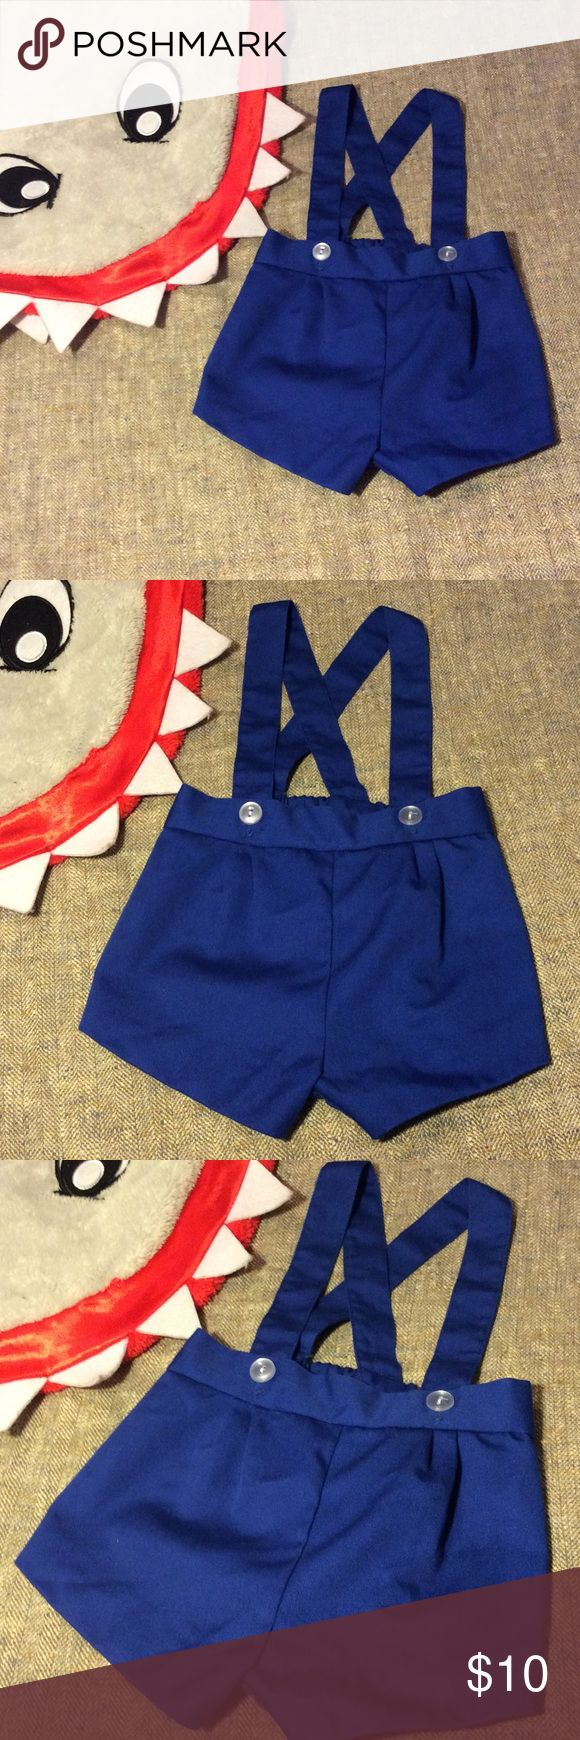 💙Baby Boy 3-6M Suspender Bloomer shorts💙 💙 Unbranded 3-6 Month Baby Boy Suspender Bloomer Shorts! 😍 Absolutely Adorable! In Perfect Condition! No Stains, Rips or Holes. Made of 65% Polyester 35% Cotton Made in the Philippines... ( Shark Blanket) Not included!! If you have any questions please feel free to ask. Also, Thank you for visiting my closet! Leave your posh name below so I can check out your closet as well. 👍🤗Thank you unbranded  Bottoms